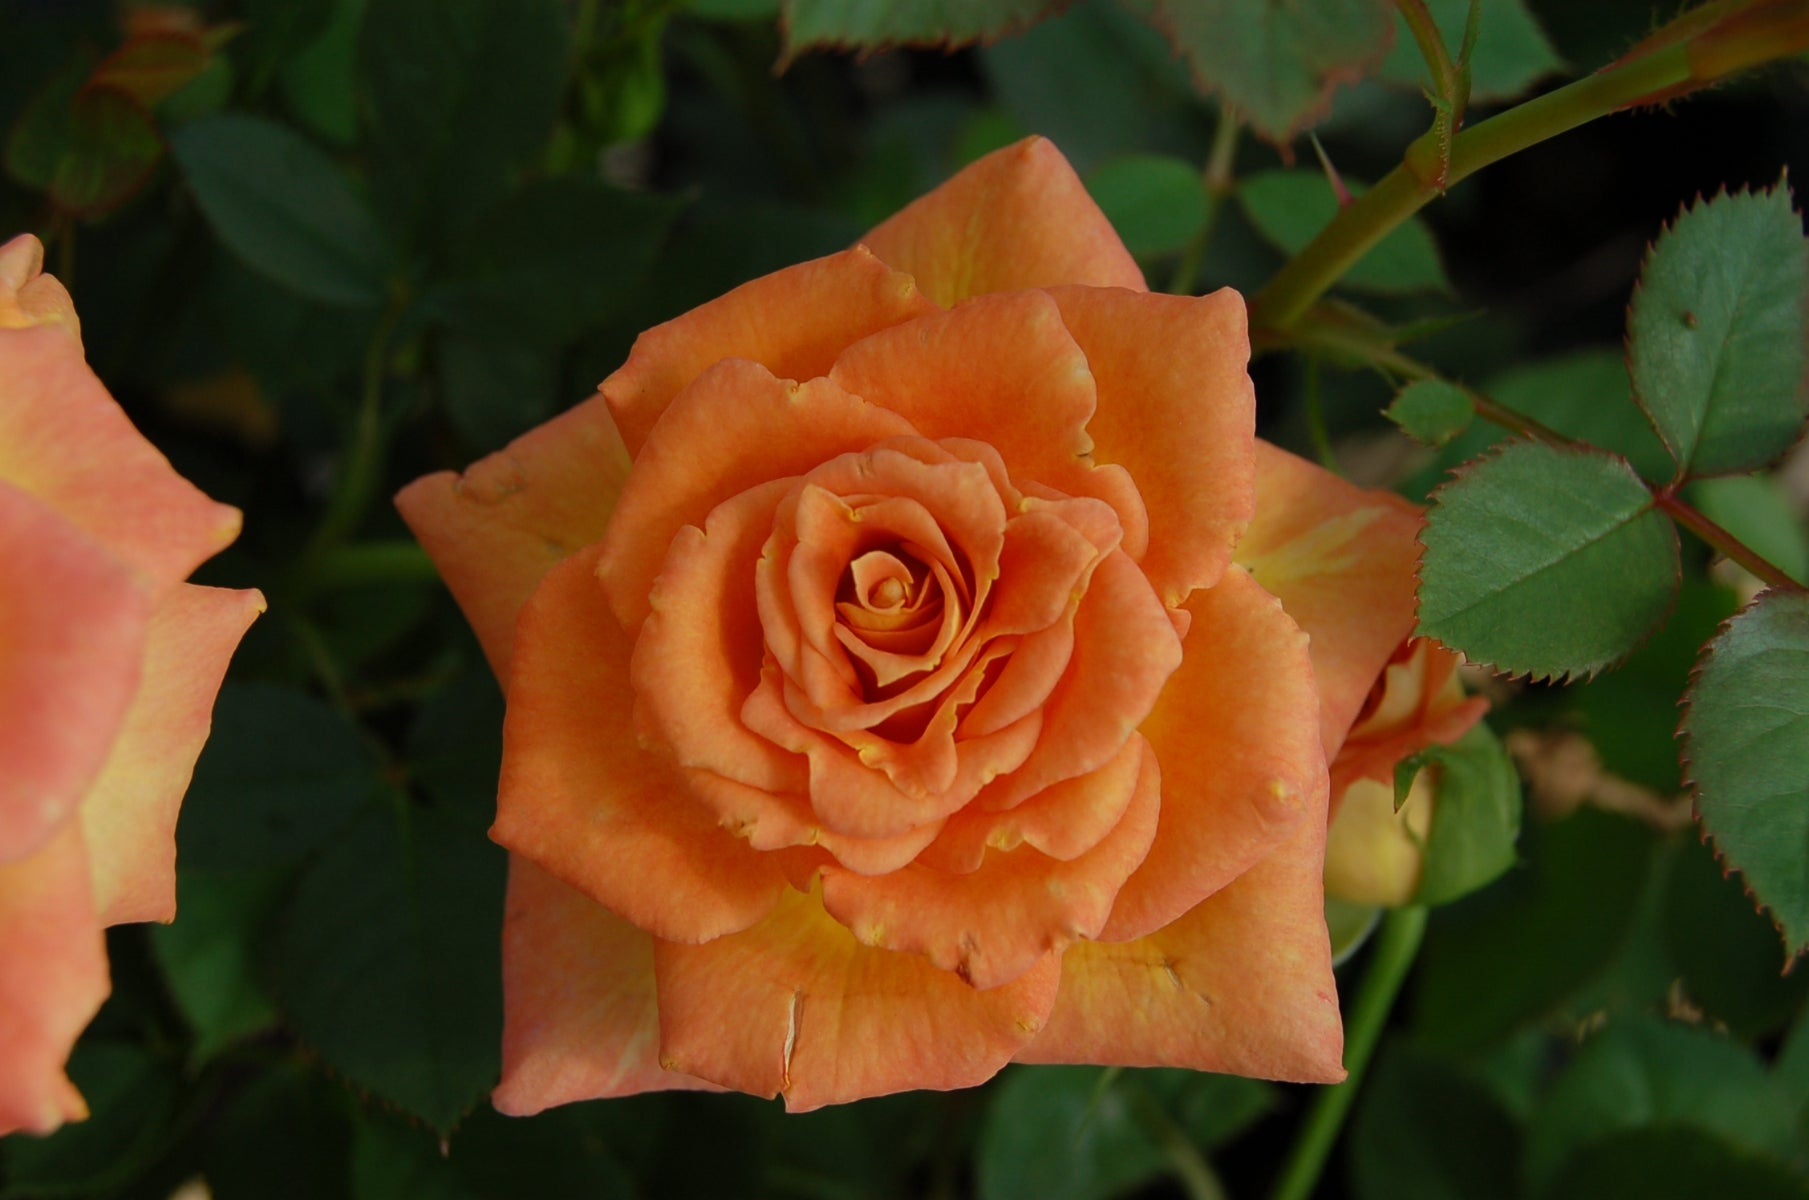 (1 Gallon) SUNROSA Orange Delight- Beautiful, compact and bushy sun rose. Very low maintenance with high disease resistance. This plant is ideal for ideal for small to medium landscape spaces and patios._Reserve_Now